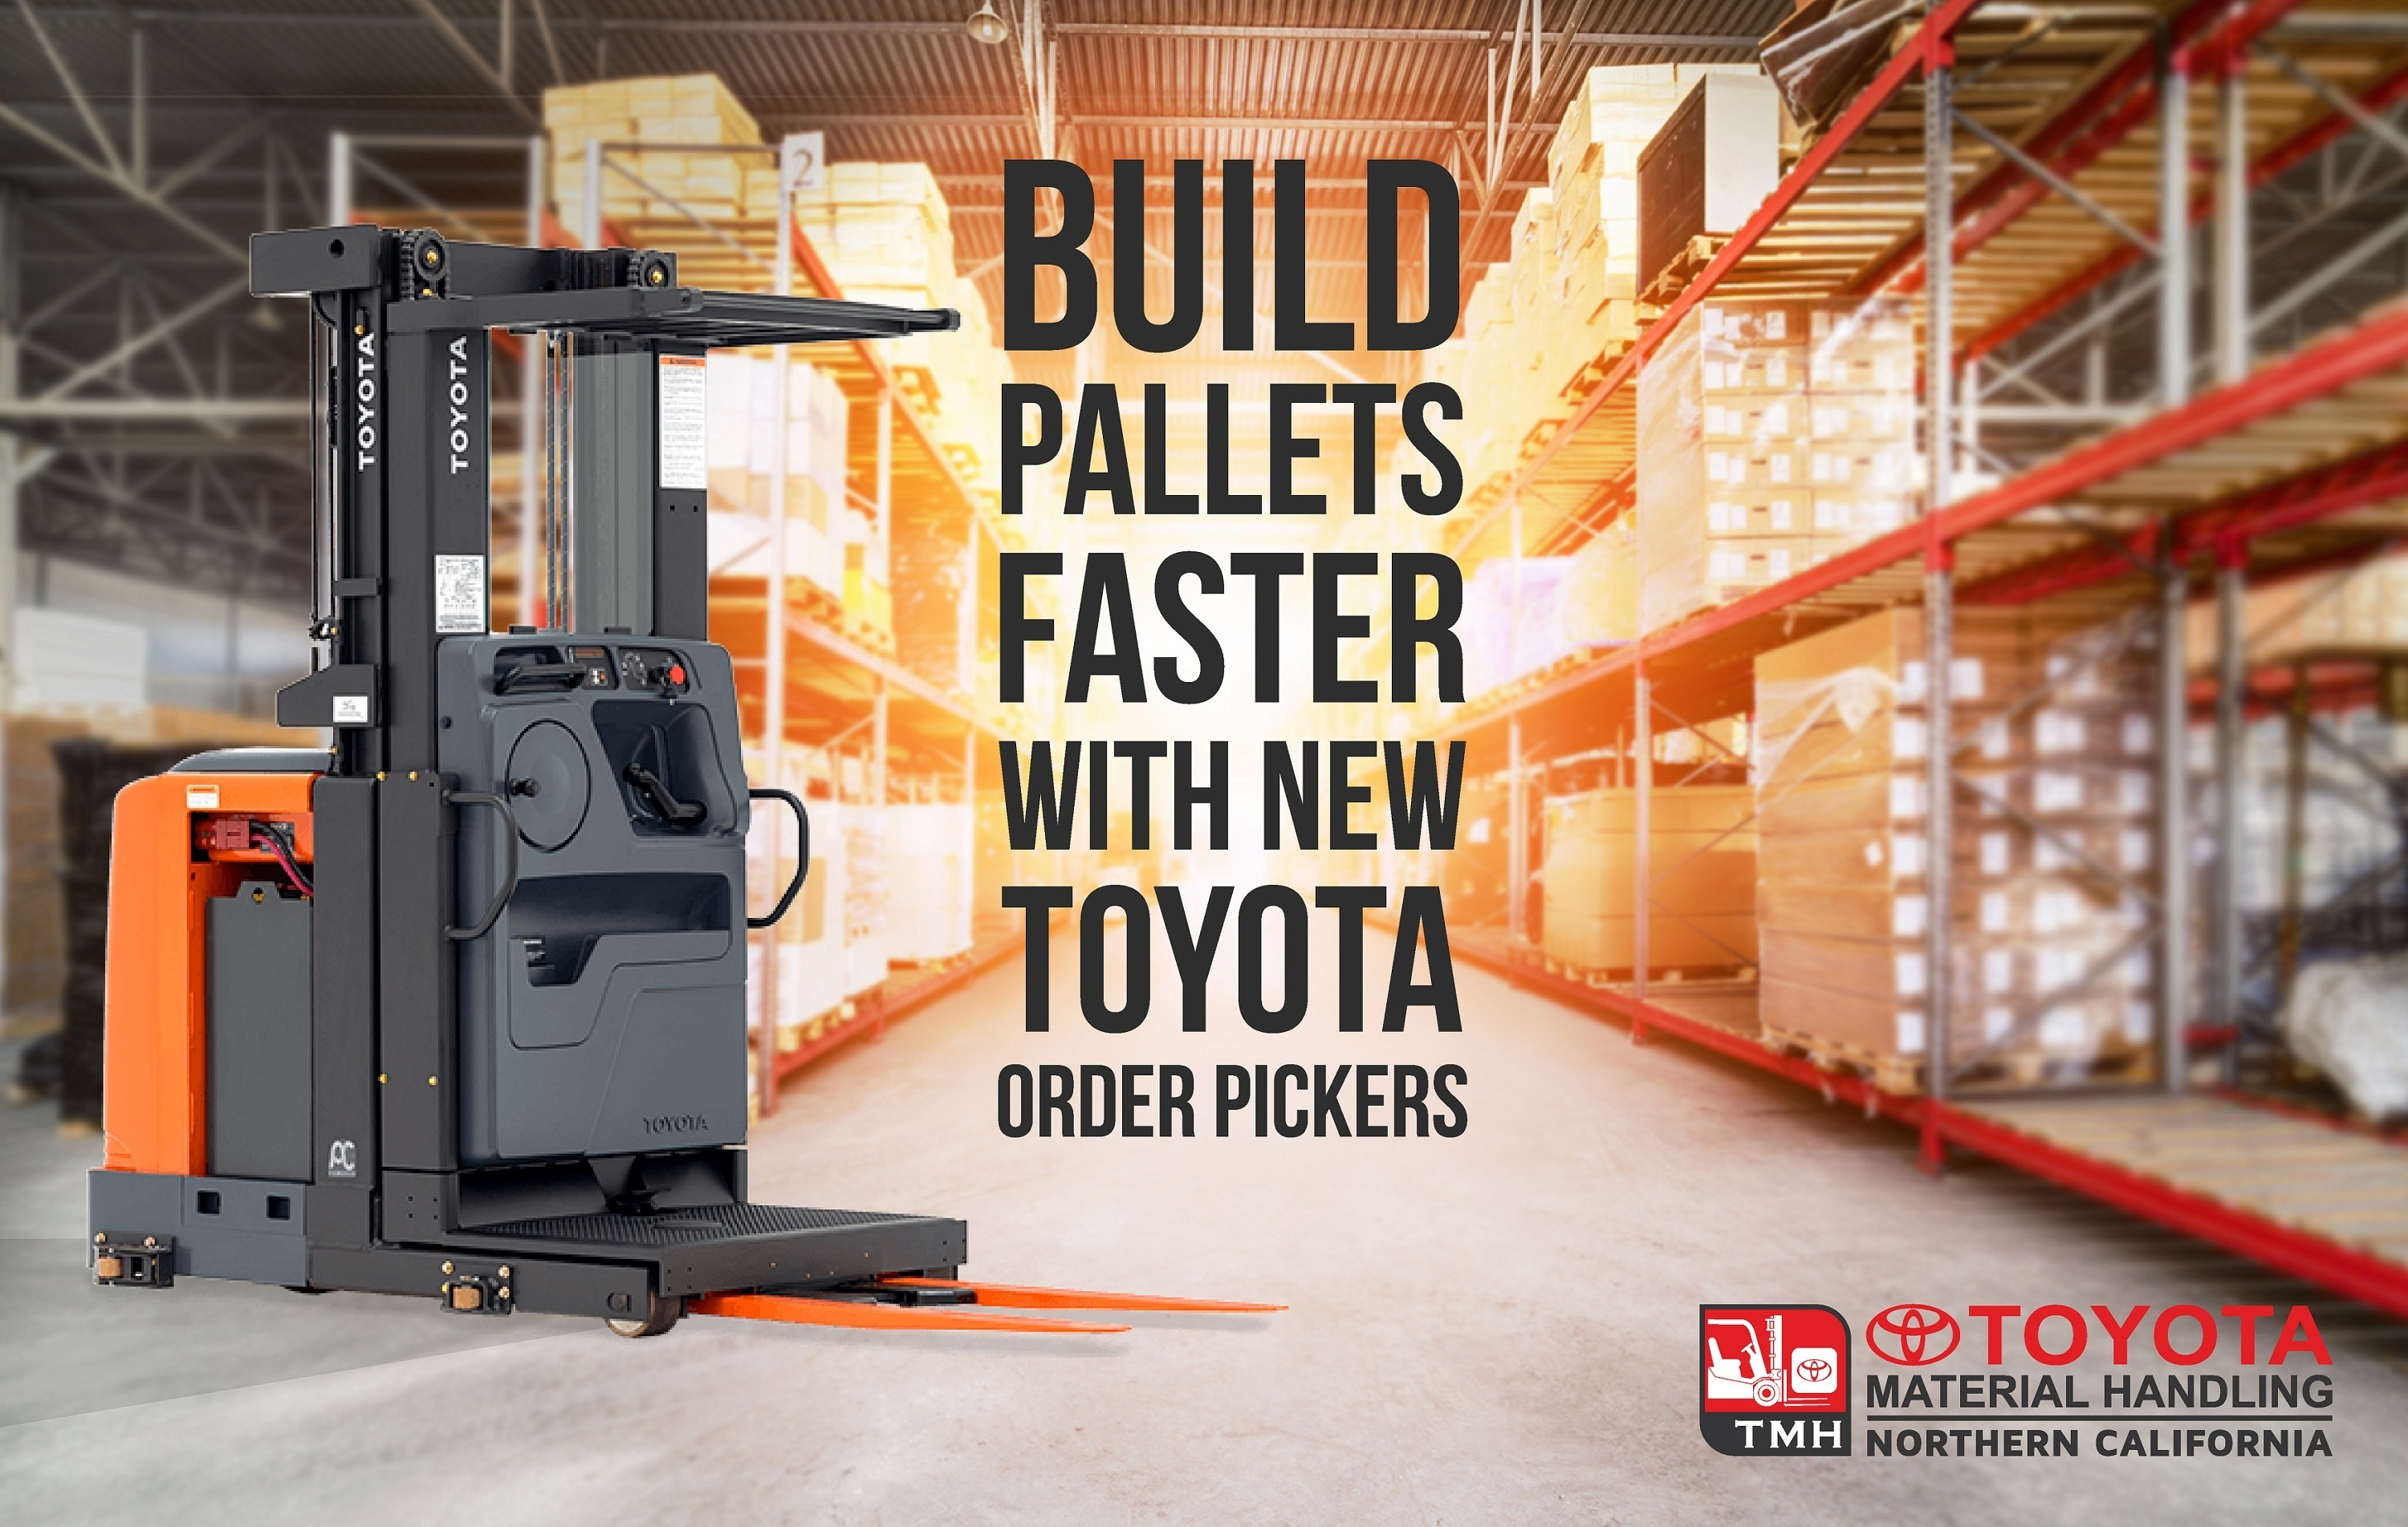 build pallets faster with new toyota order pickers